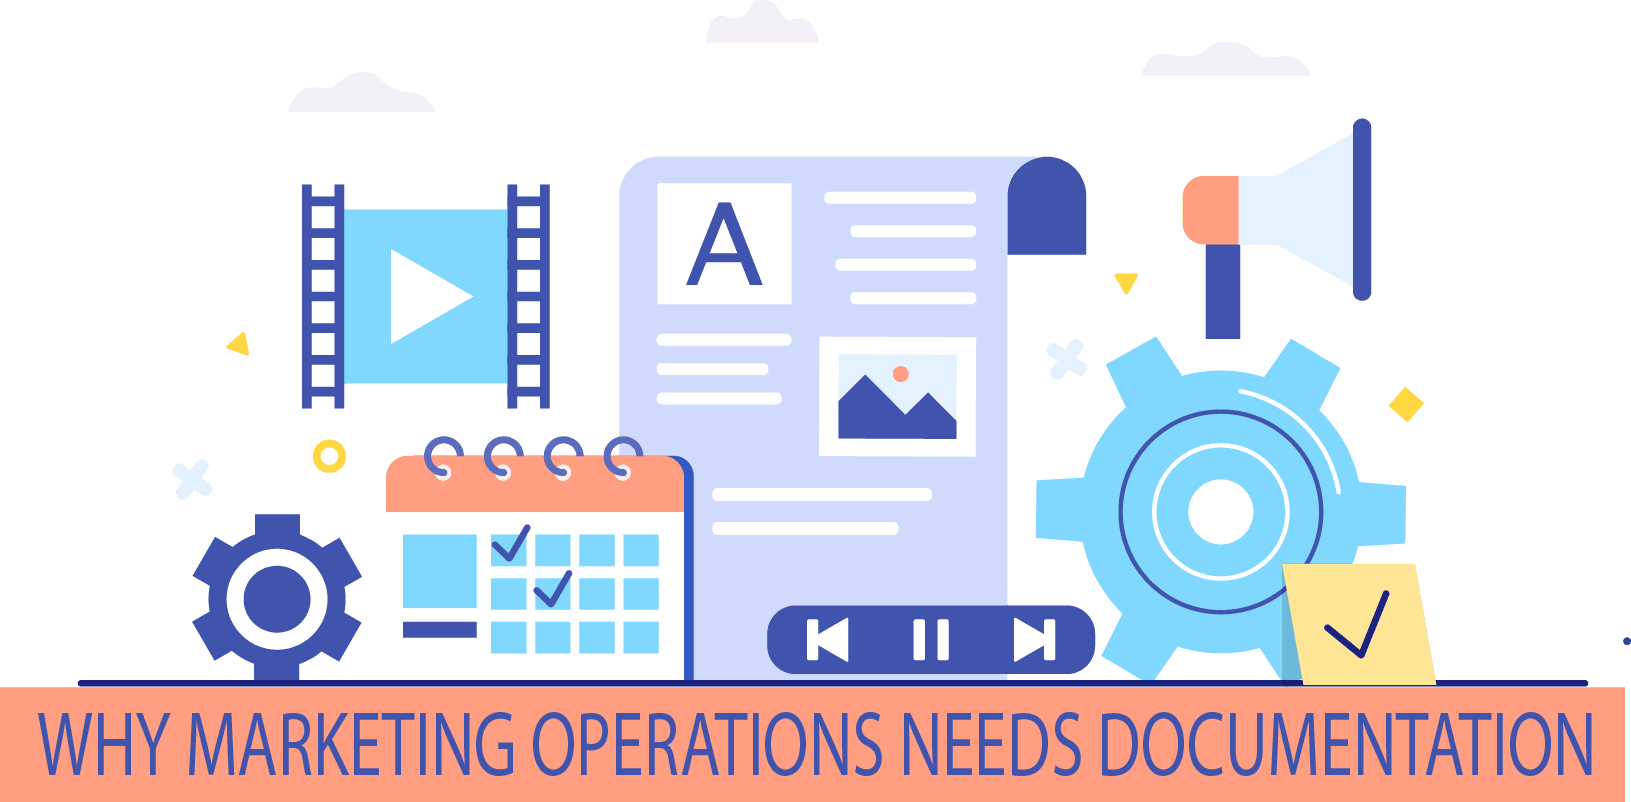 Why does marketing operations need documentation?